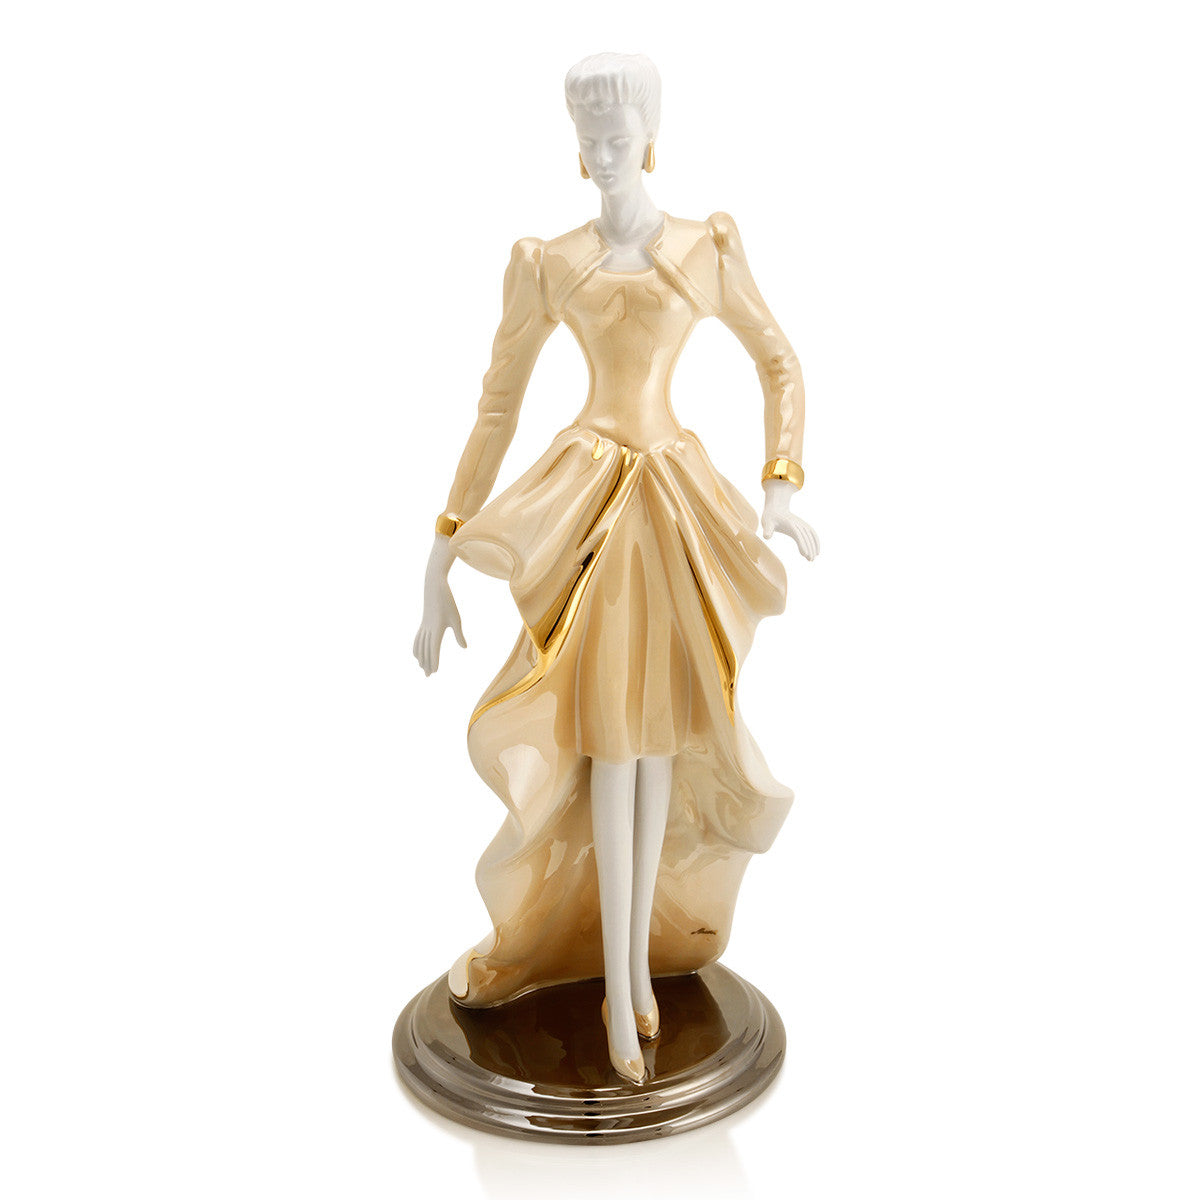 woman figurine collection ceramic porcelain home decor